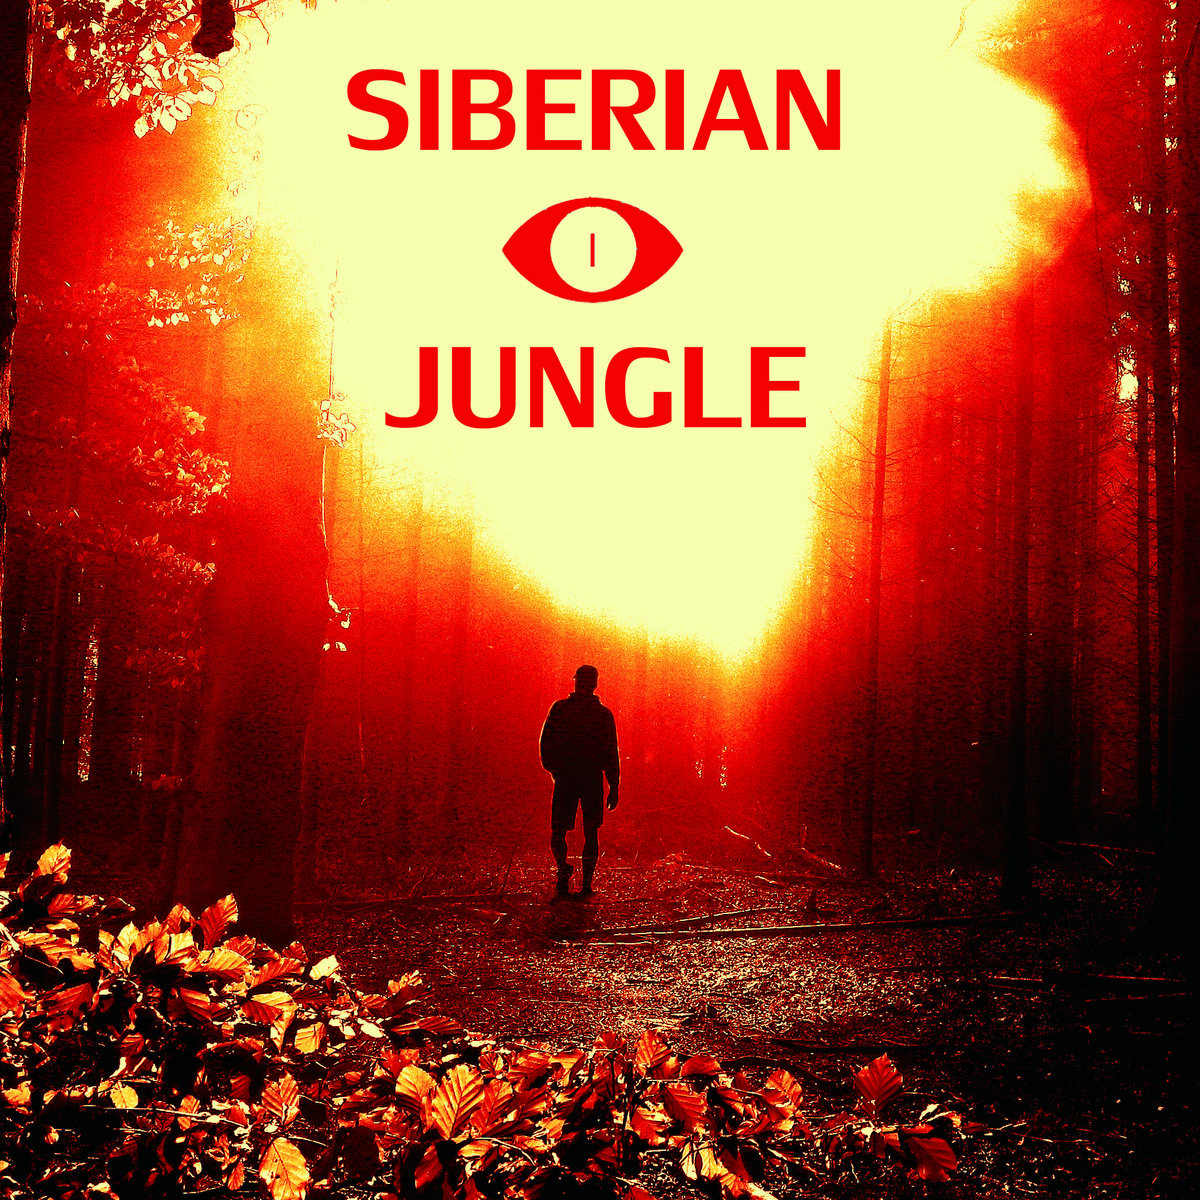 Nuclear Box - Neoromantic @ 'Siberian Jungle - Volume 1' album (atmospheric drum'n'bass, electronic)